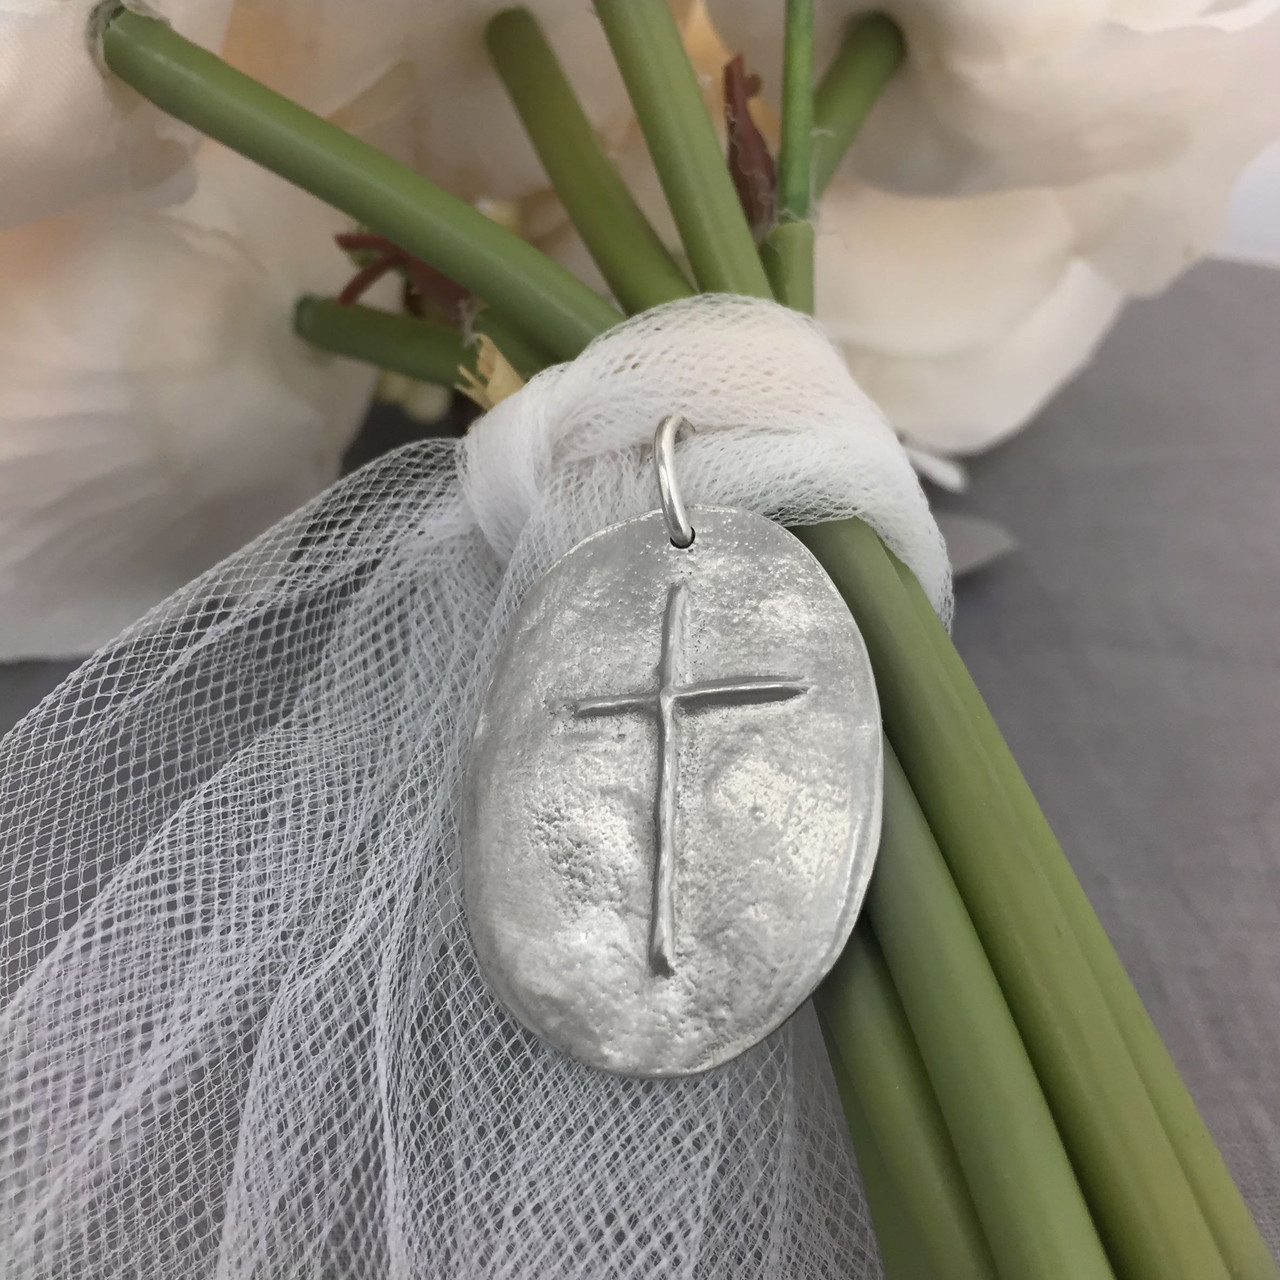 Memorial handwritten note on bouquet charm with cross